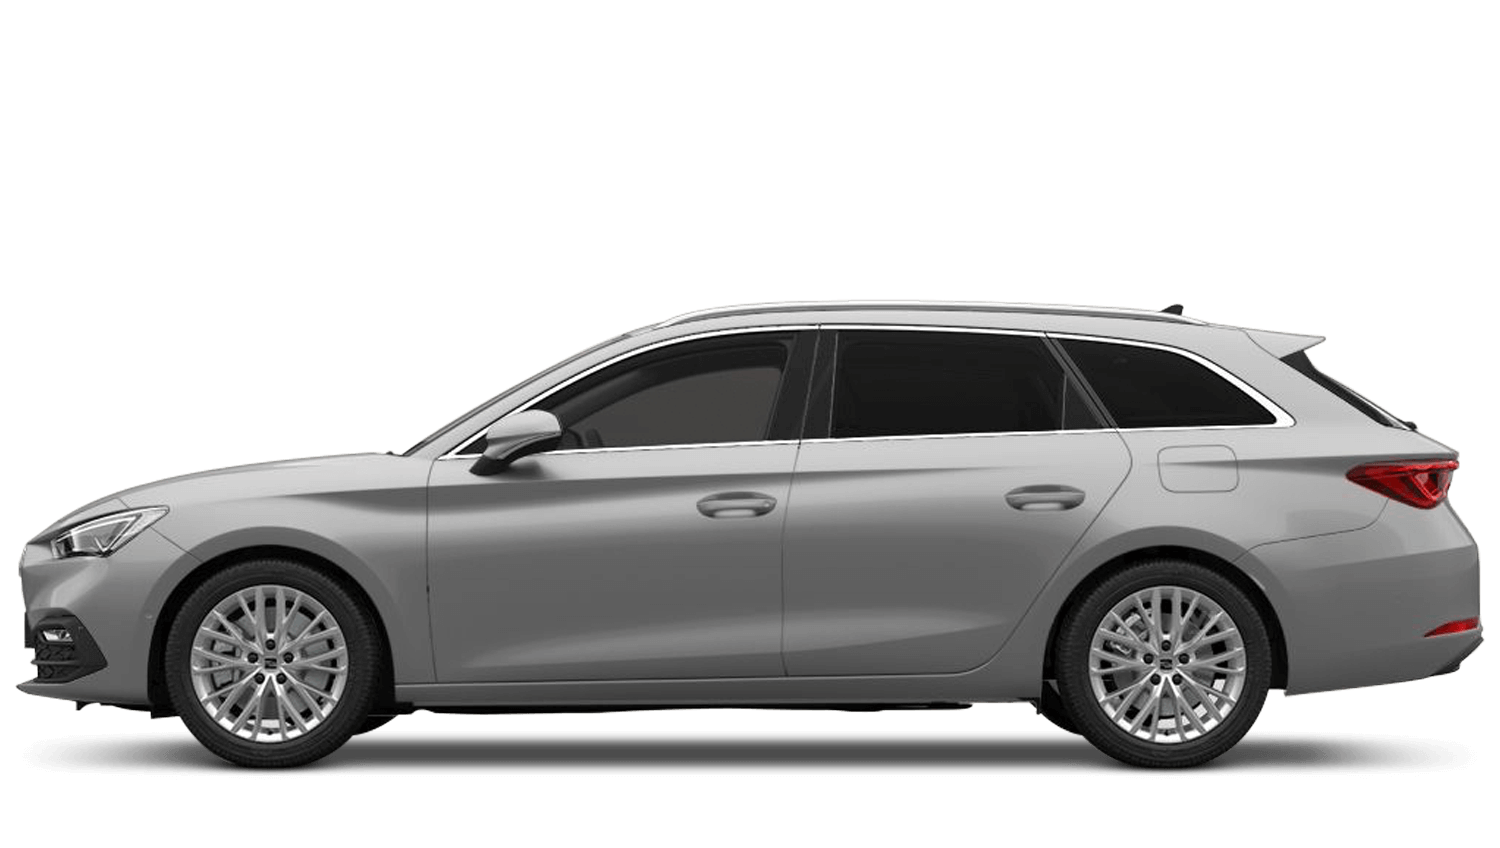 Urban Silver (Metallic) New SEAT Leon Estate